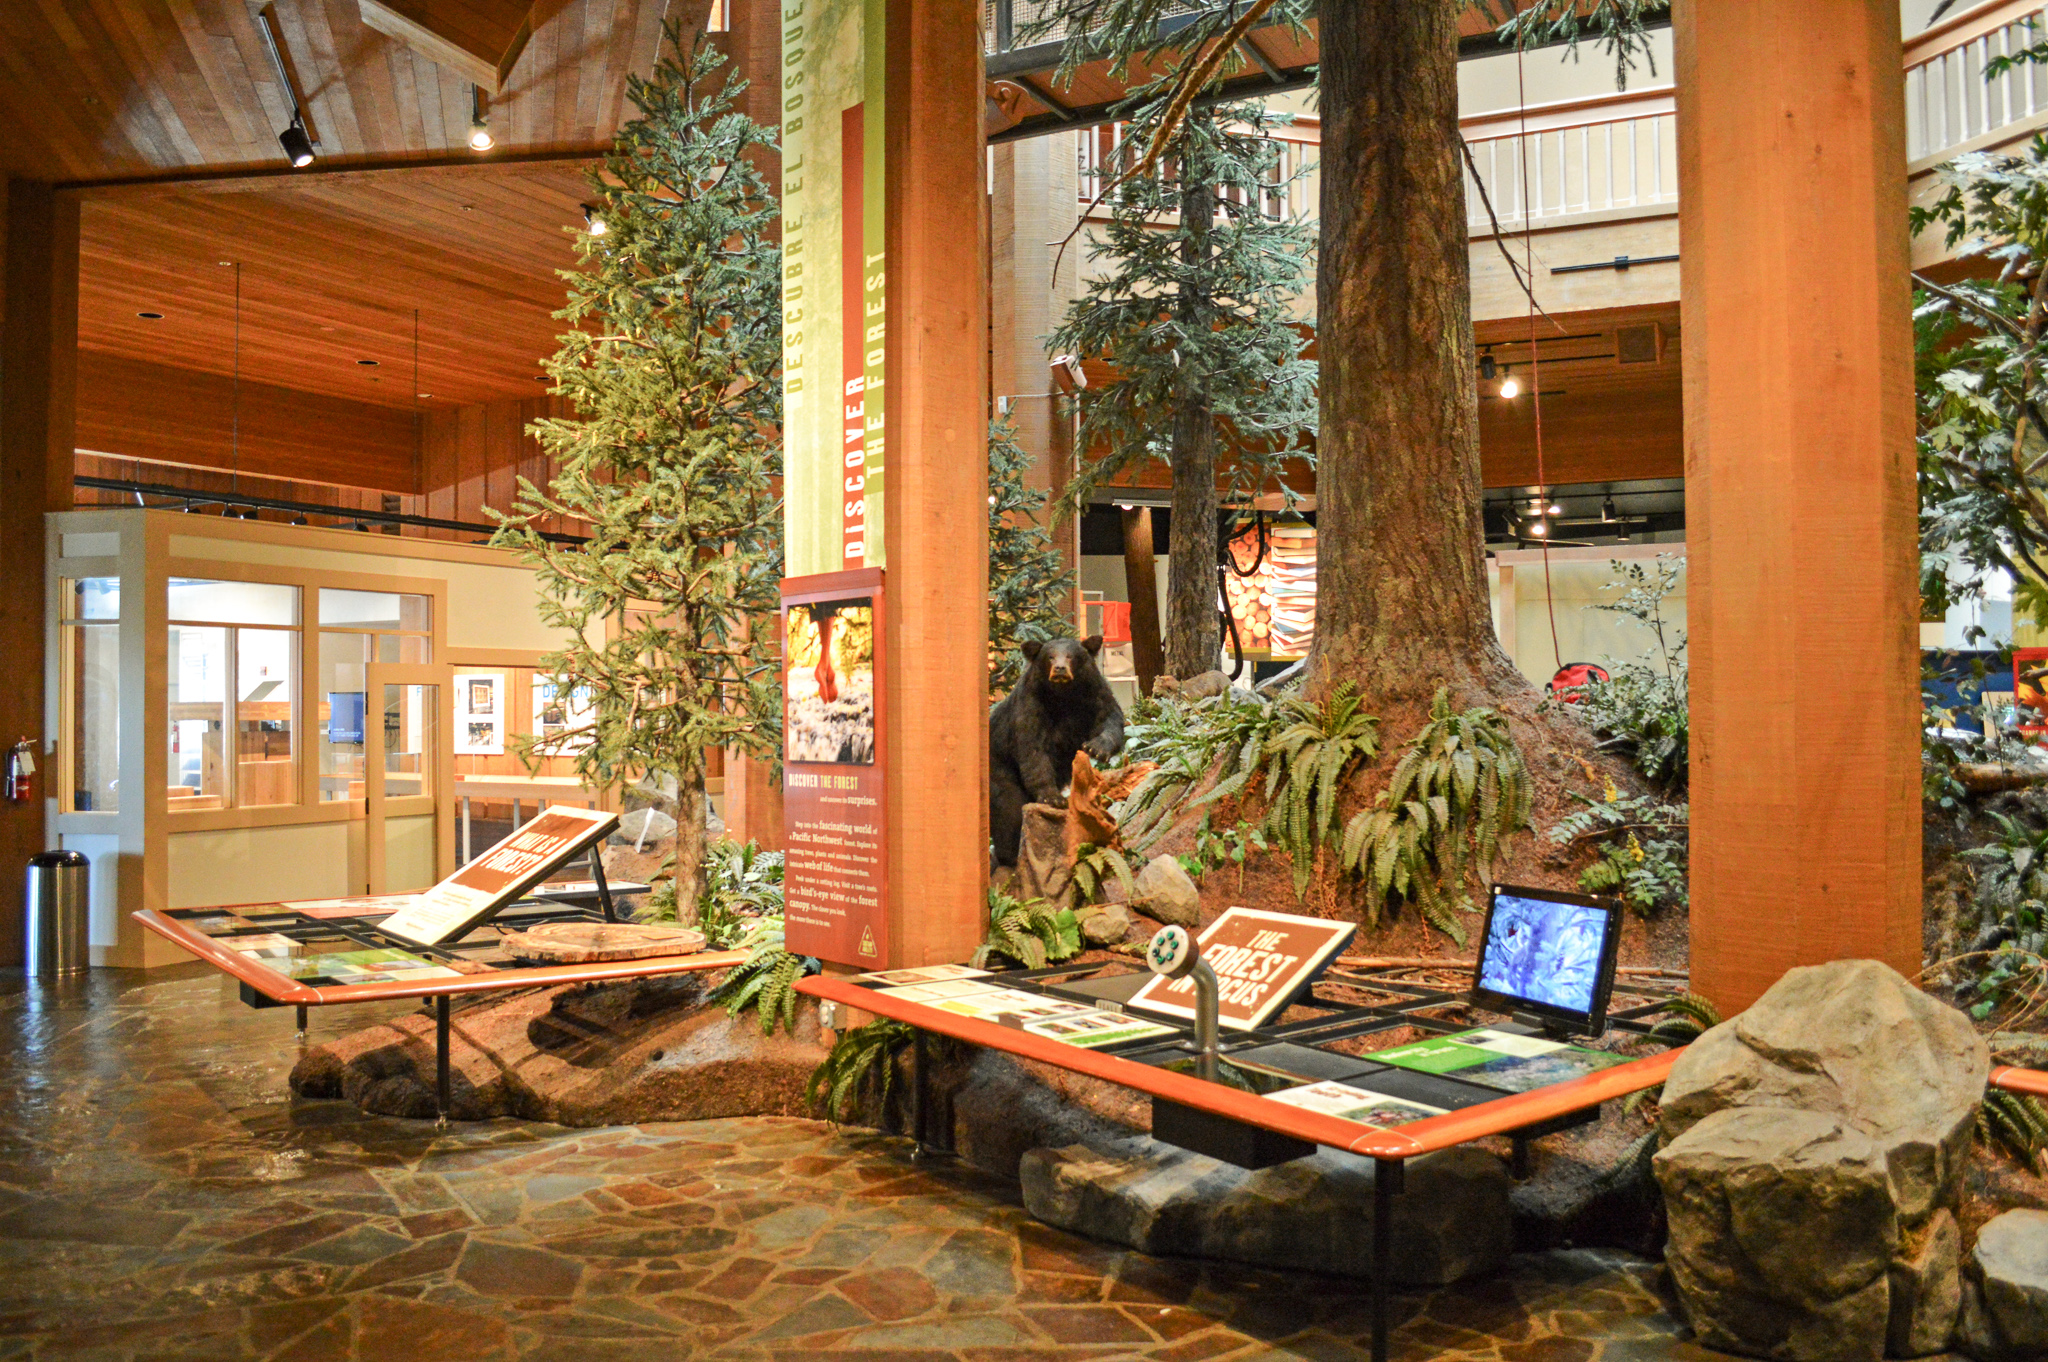 Discovery Museum lobby with forest display